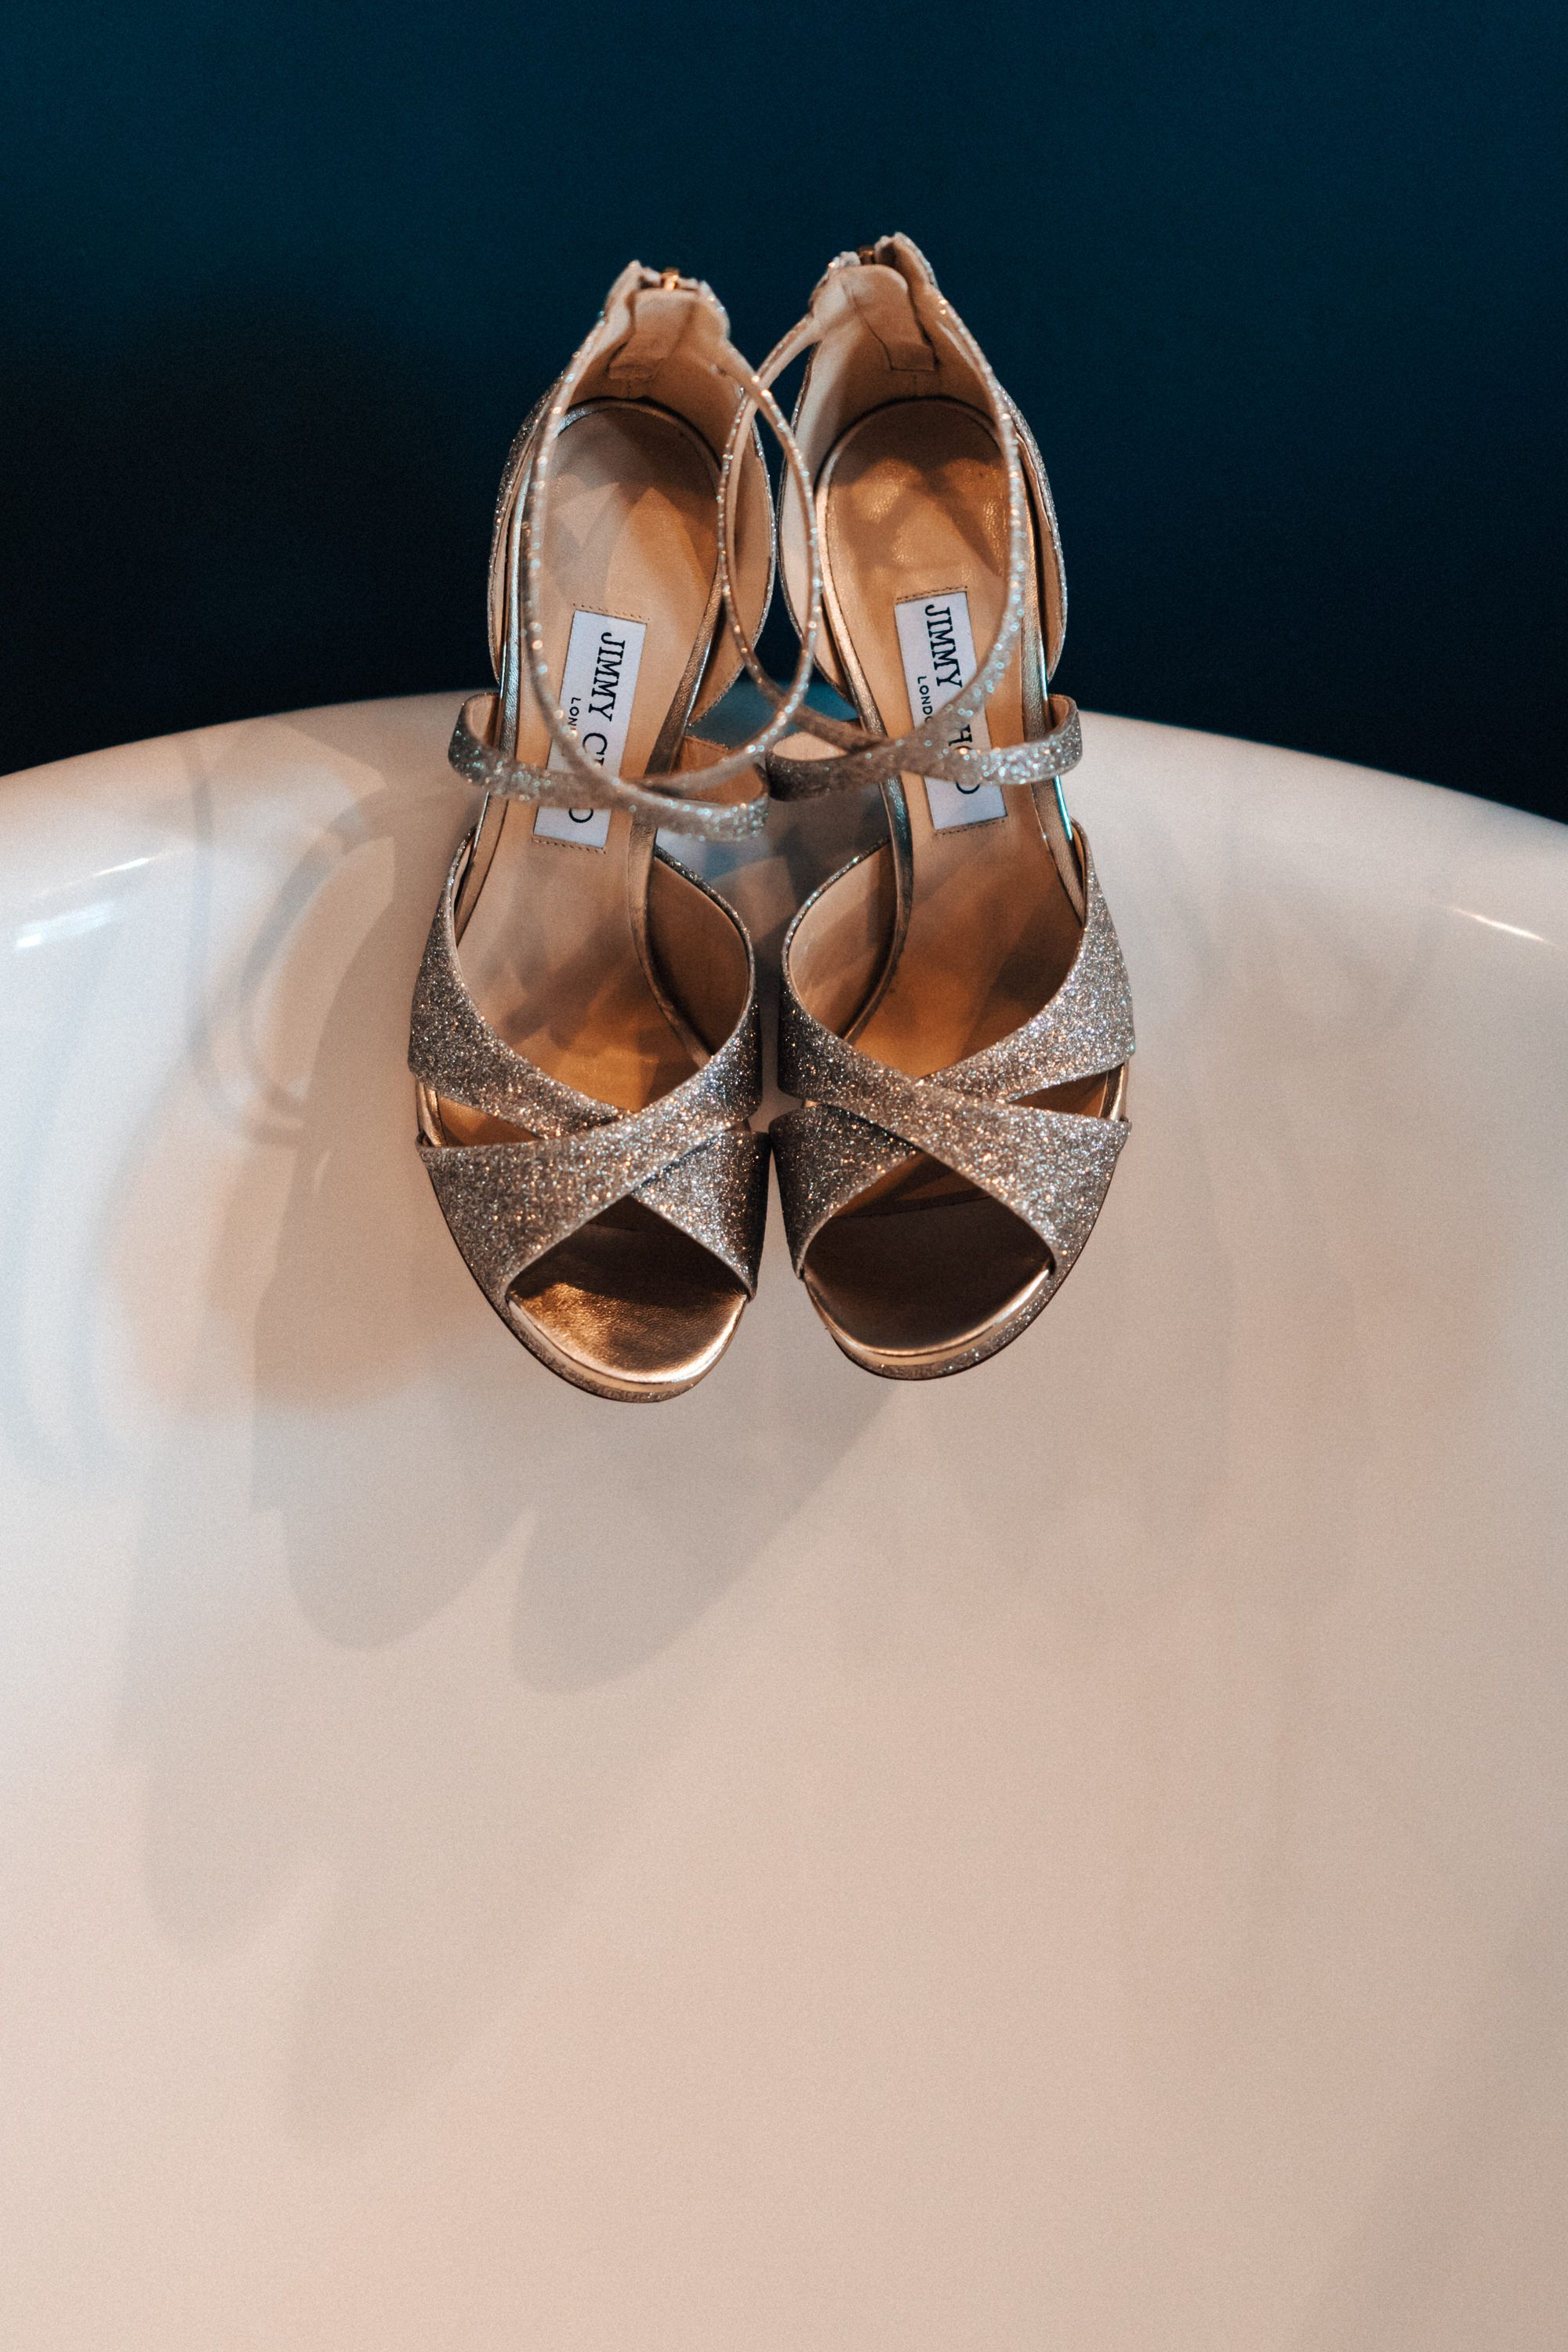 Jimmy Choo wedding shoes taken on the bar at 131 Cheltenham